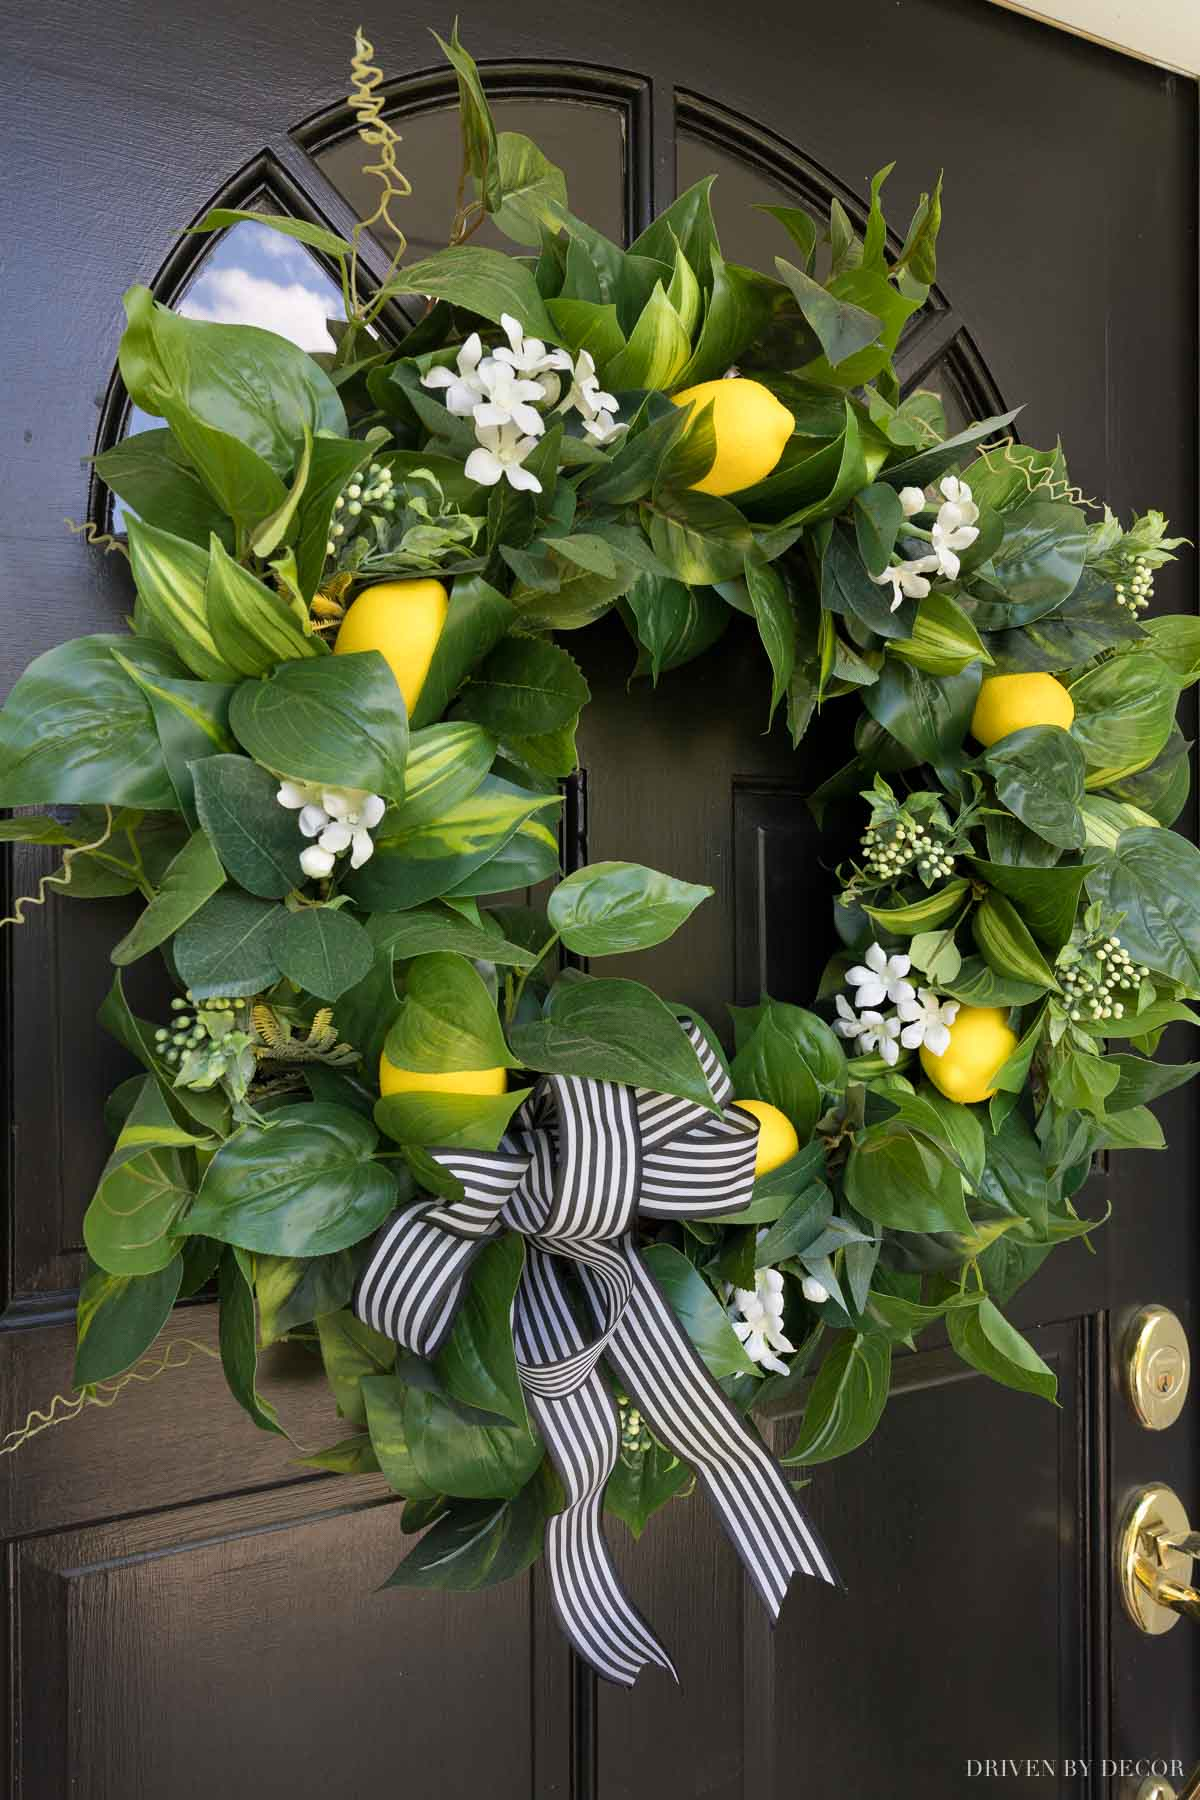 Our spring wreath with artificial greenery, flowers, and lemons!